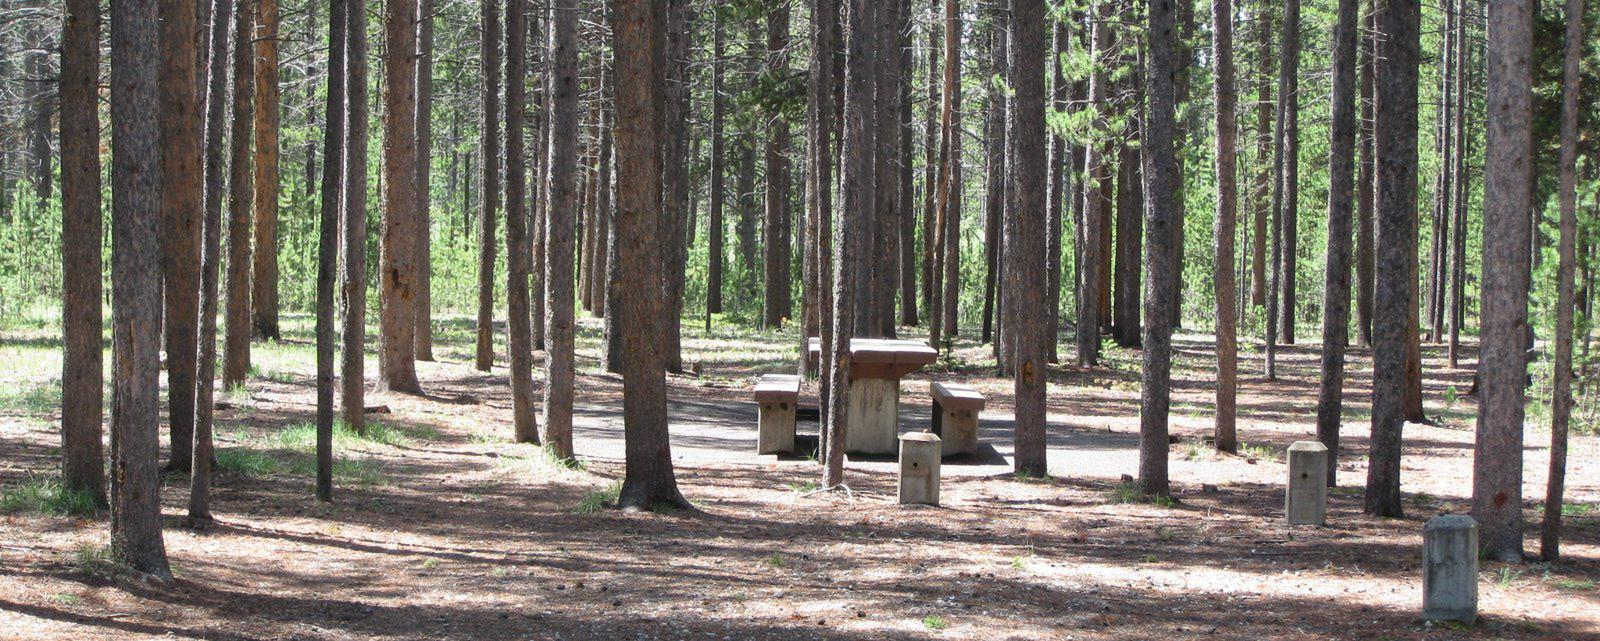 Site C12, surrounded by pine trees, picnic table & fire ringSite C12